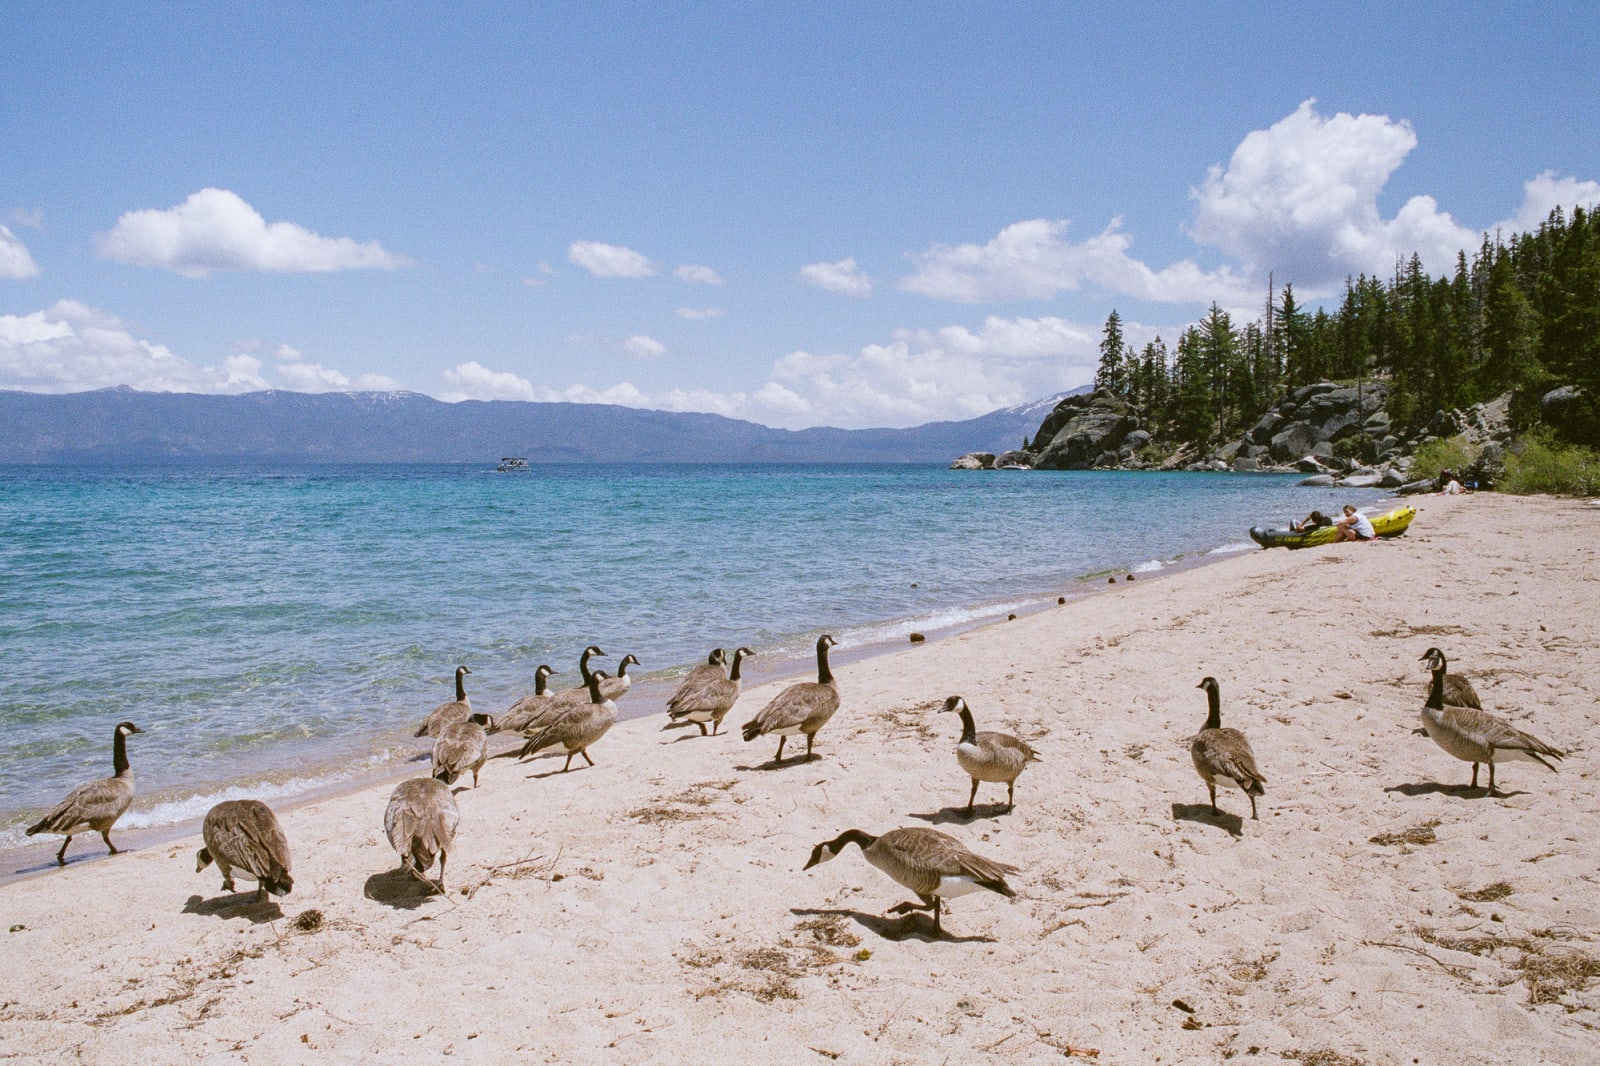 Canada goose on the beach of Lake Tahoe. Summer, 2019